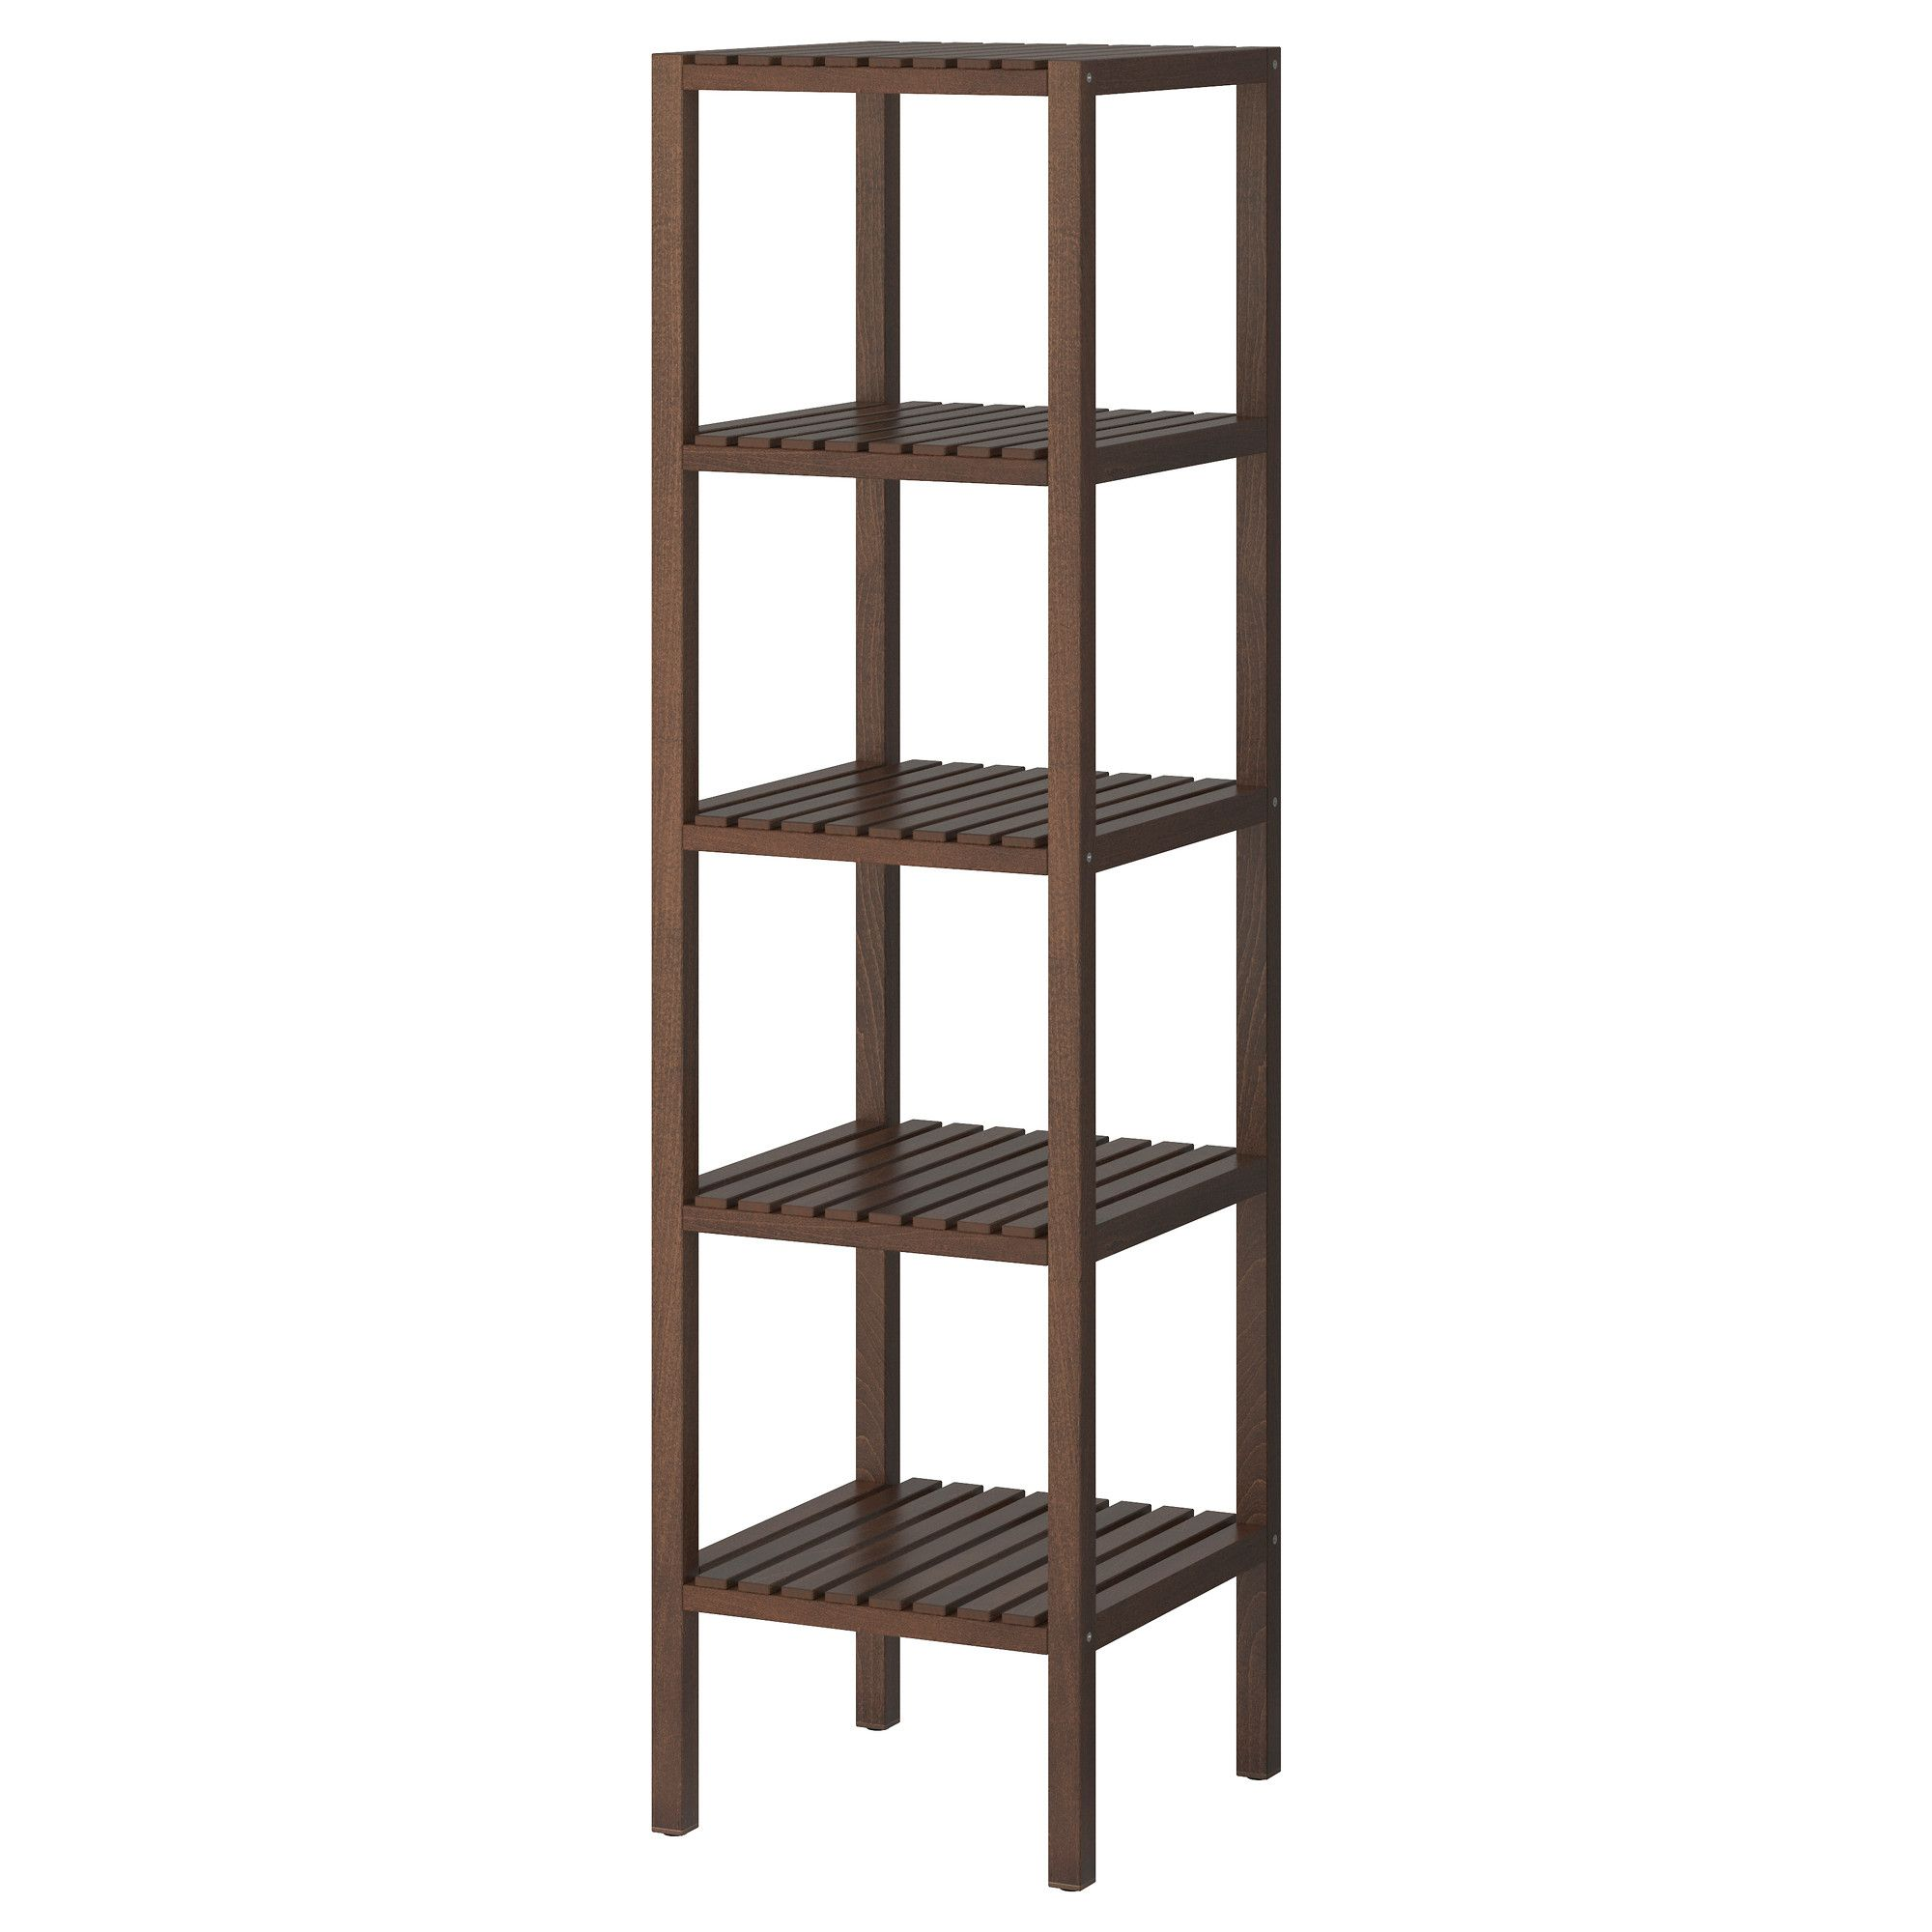 Bad Regal Ikea molger shelf unit birch brown open shelves and bathroom stuff